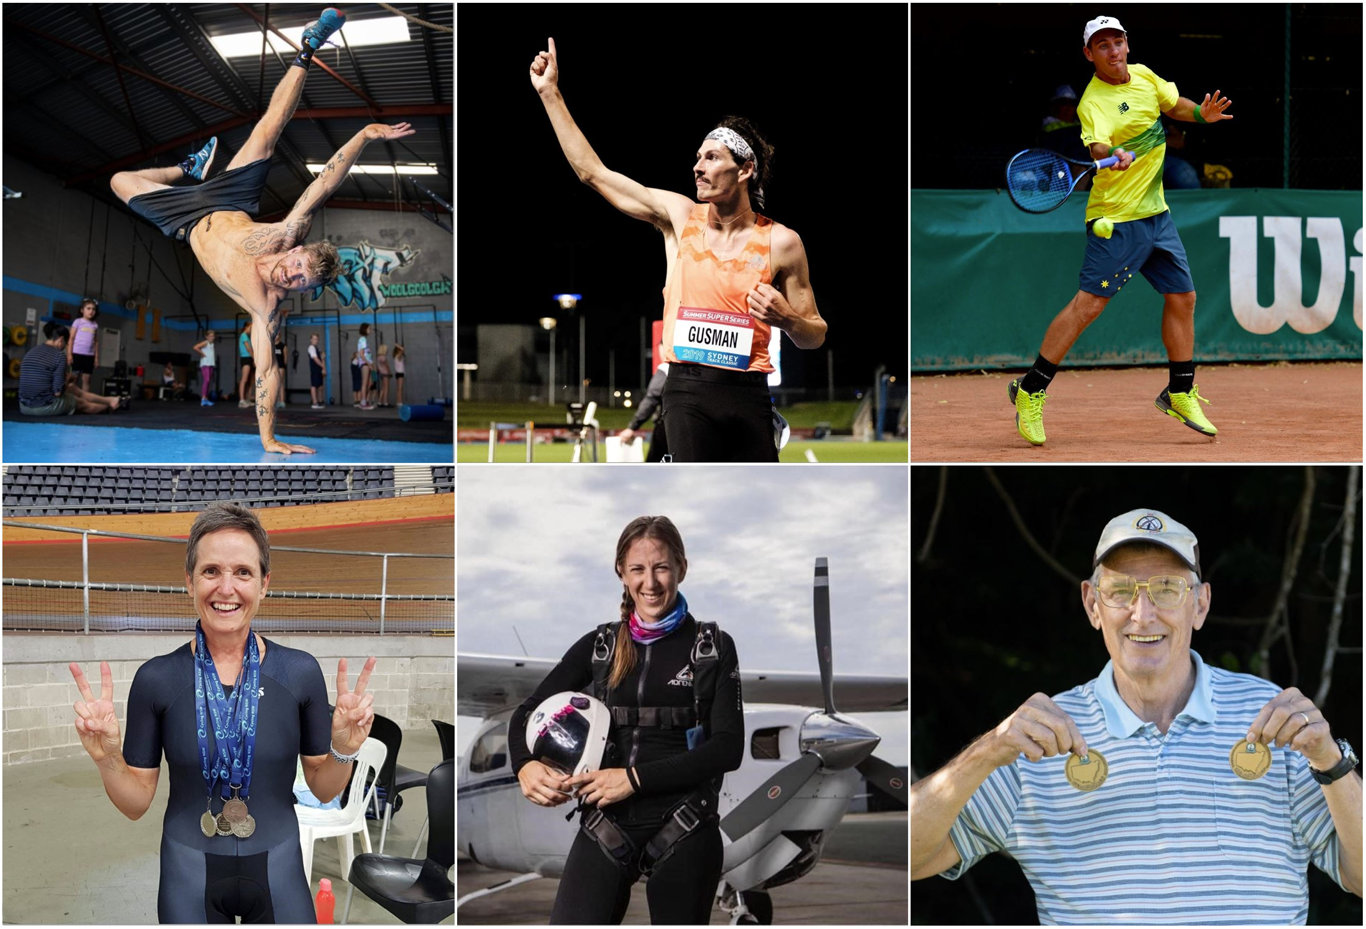 BEST OF THE BEST: (Clockwise from top left) Lars Kristensen, Jordan Gusman, Damian Phillips, Kerry Westwood, Jessica Johnston and Greg Sutherland have all made our athletes of the year.